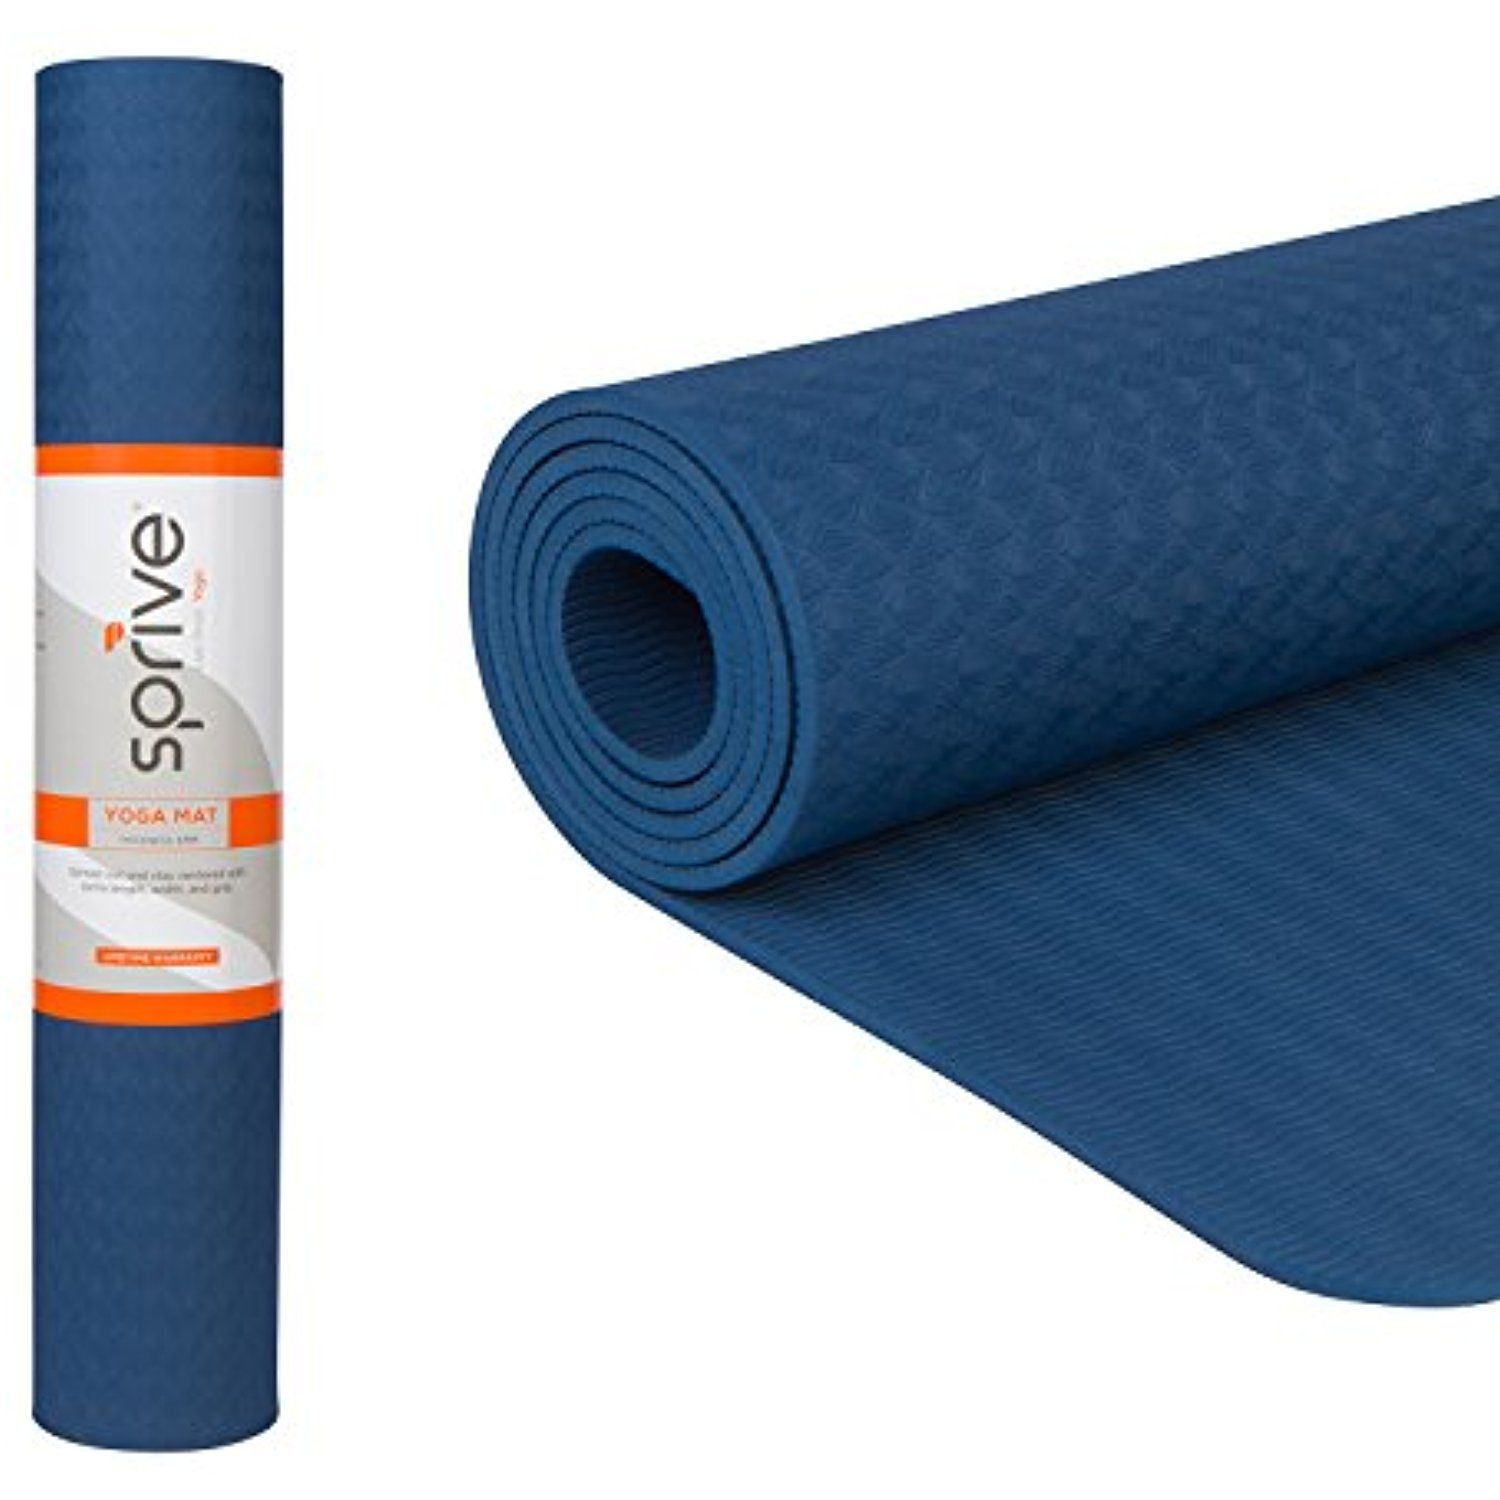 Sprive Tpe Yoga Mat 6mm For Yoga Pilates Burpee Core Exercises Health Fitness Interval Training Eco Friendly Dura Interval Training Core Workout Yoga